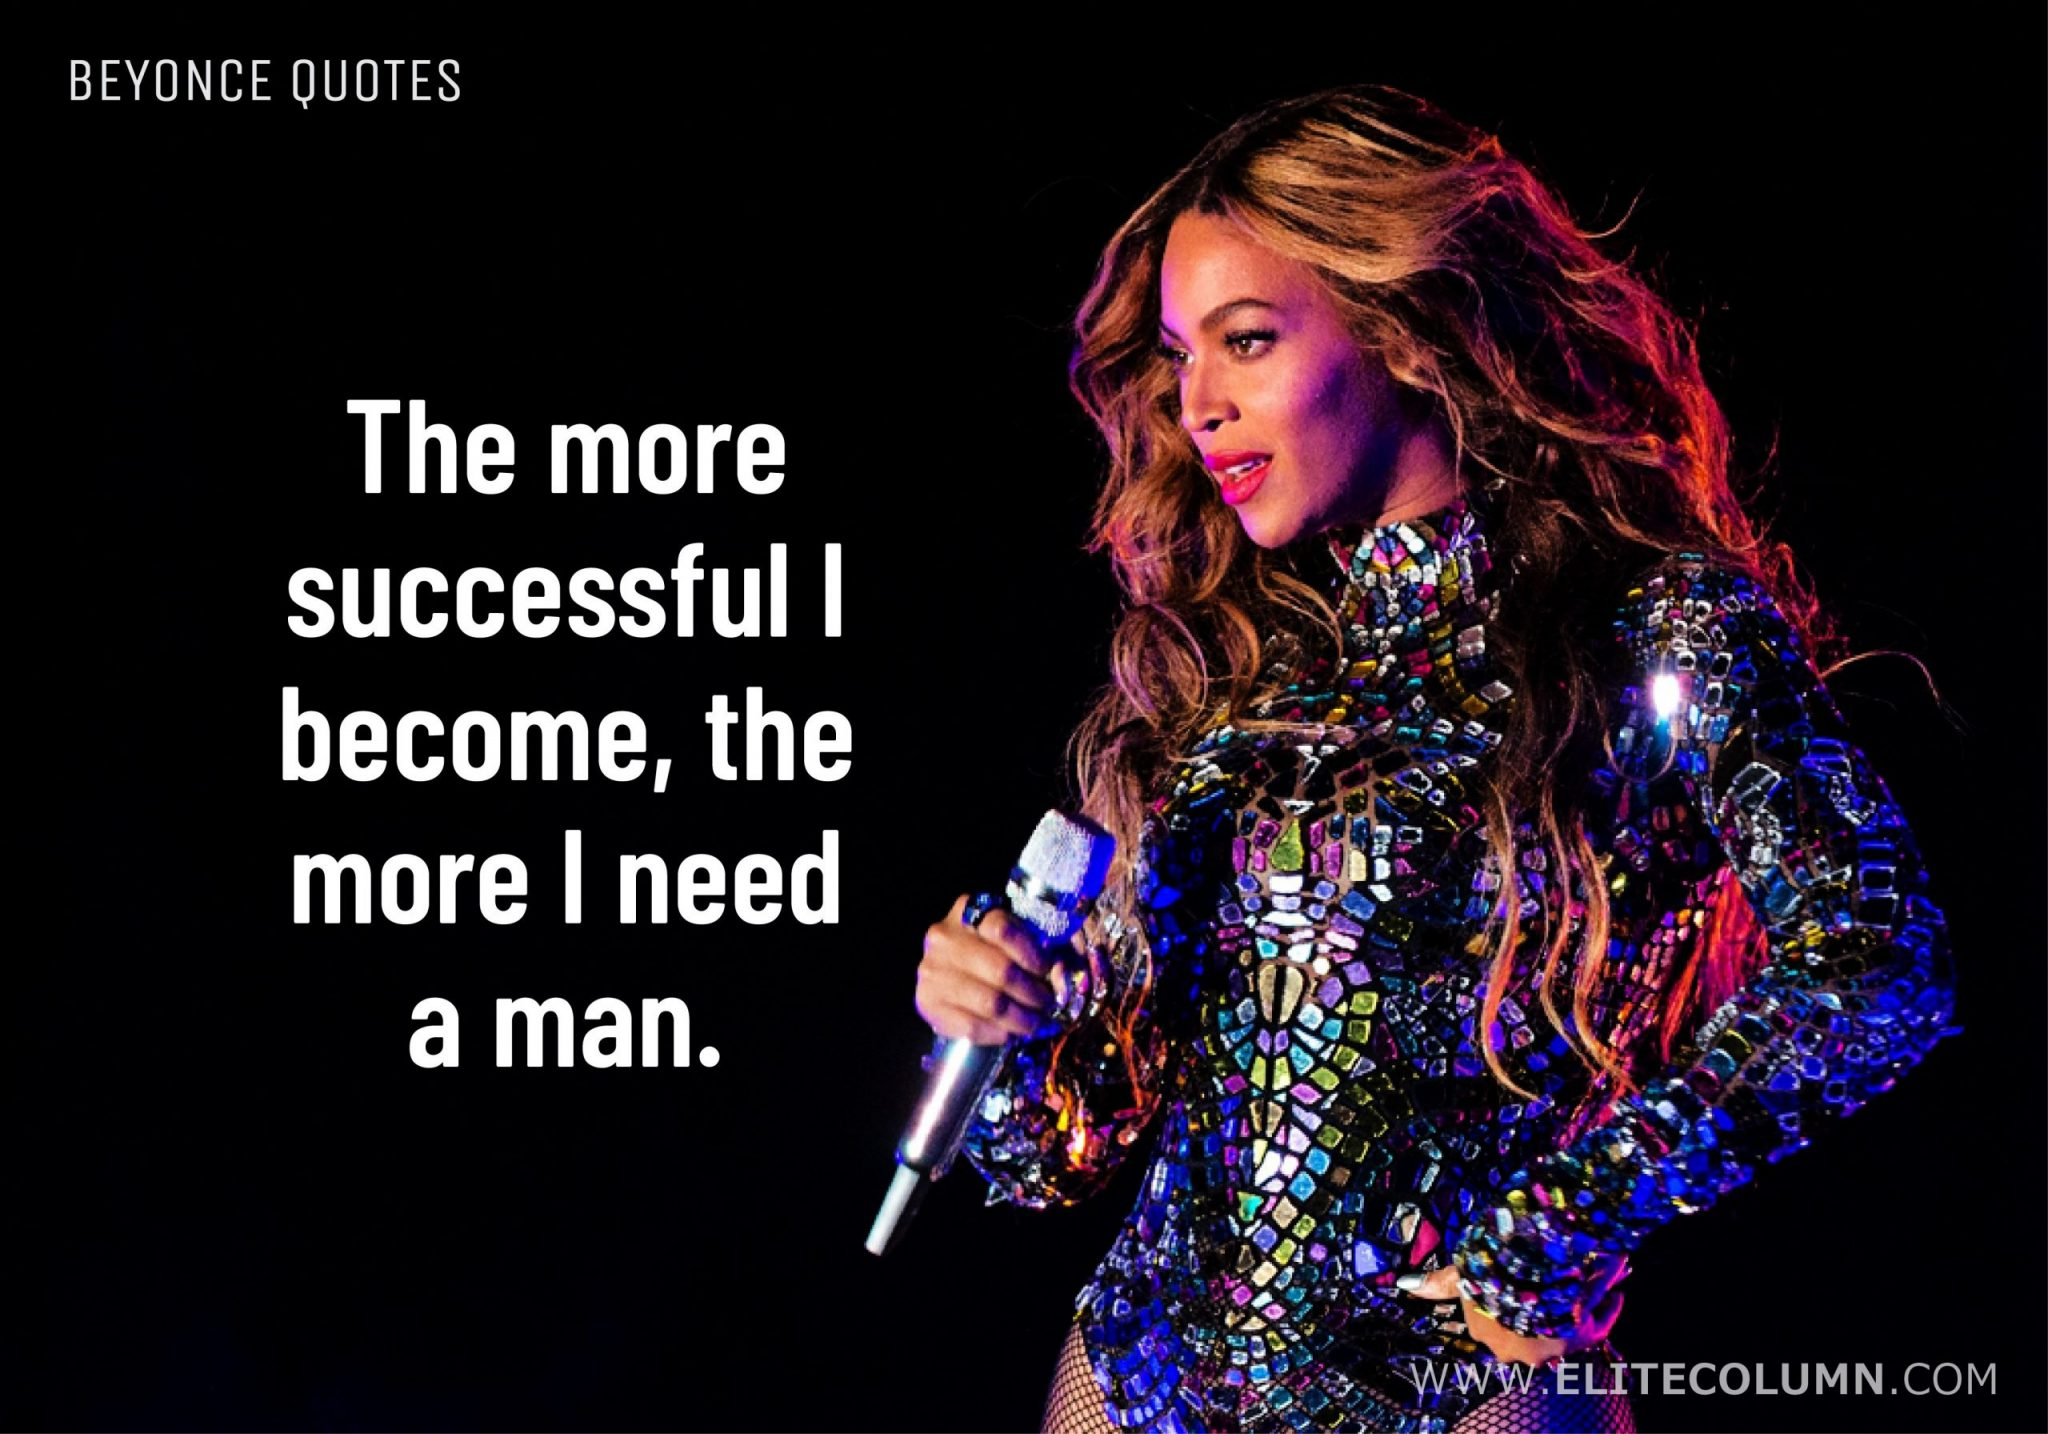 Beyonce Quotes (6)